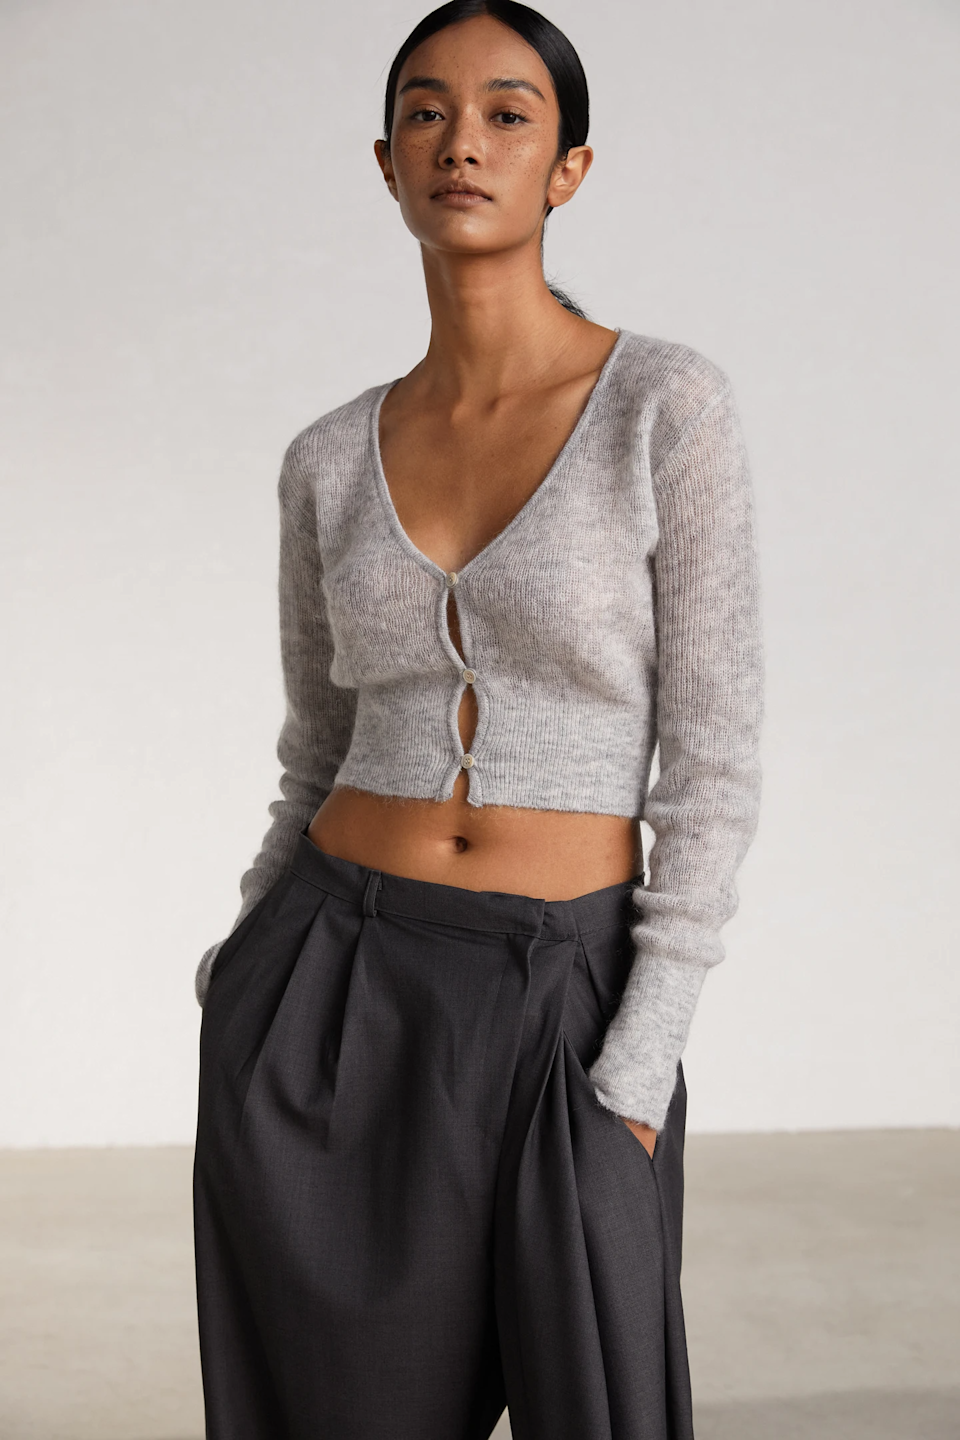 "Midriffs were out for the world to see during spring '21 fashion month, so obviously your fashion friend needs to get in on the trend stat.<br><br><strong>The Source Unknown</strong> Fuzzy Mohair Cardigan, $, available at <a href=""https://go.skimresources.com/?id=30283X879131&url=https%3A%2F%2Fthesourceunknown.com%2Fcollections%2Fnew-in%2Fproducts%2Ffuzzy-mohair-cardigan-light-grey"" rel=""nofollow noopener"" target=""_blank"" data-ylk=""slk:The Source Unknown"" class=""link rapid-noclick-resp"">The Source Unknown</a>"